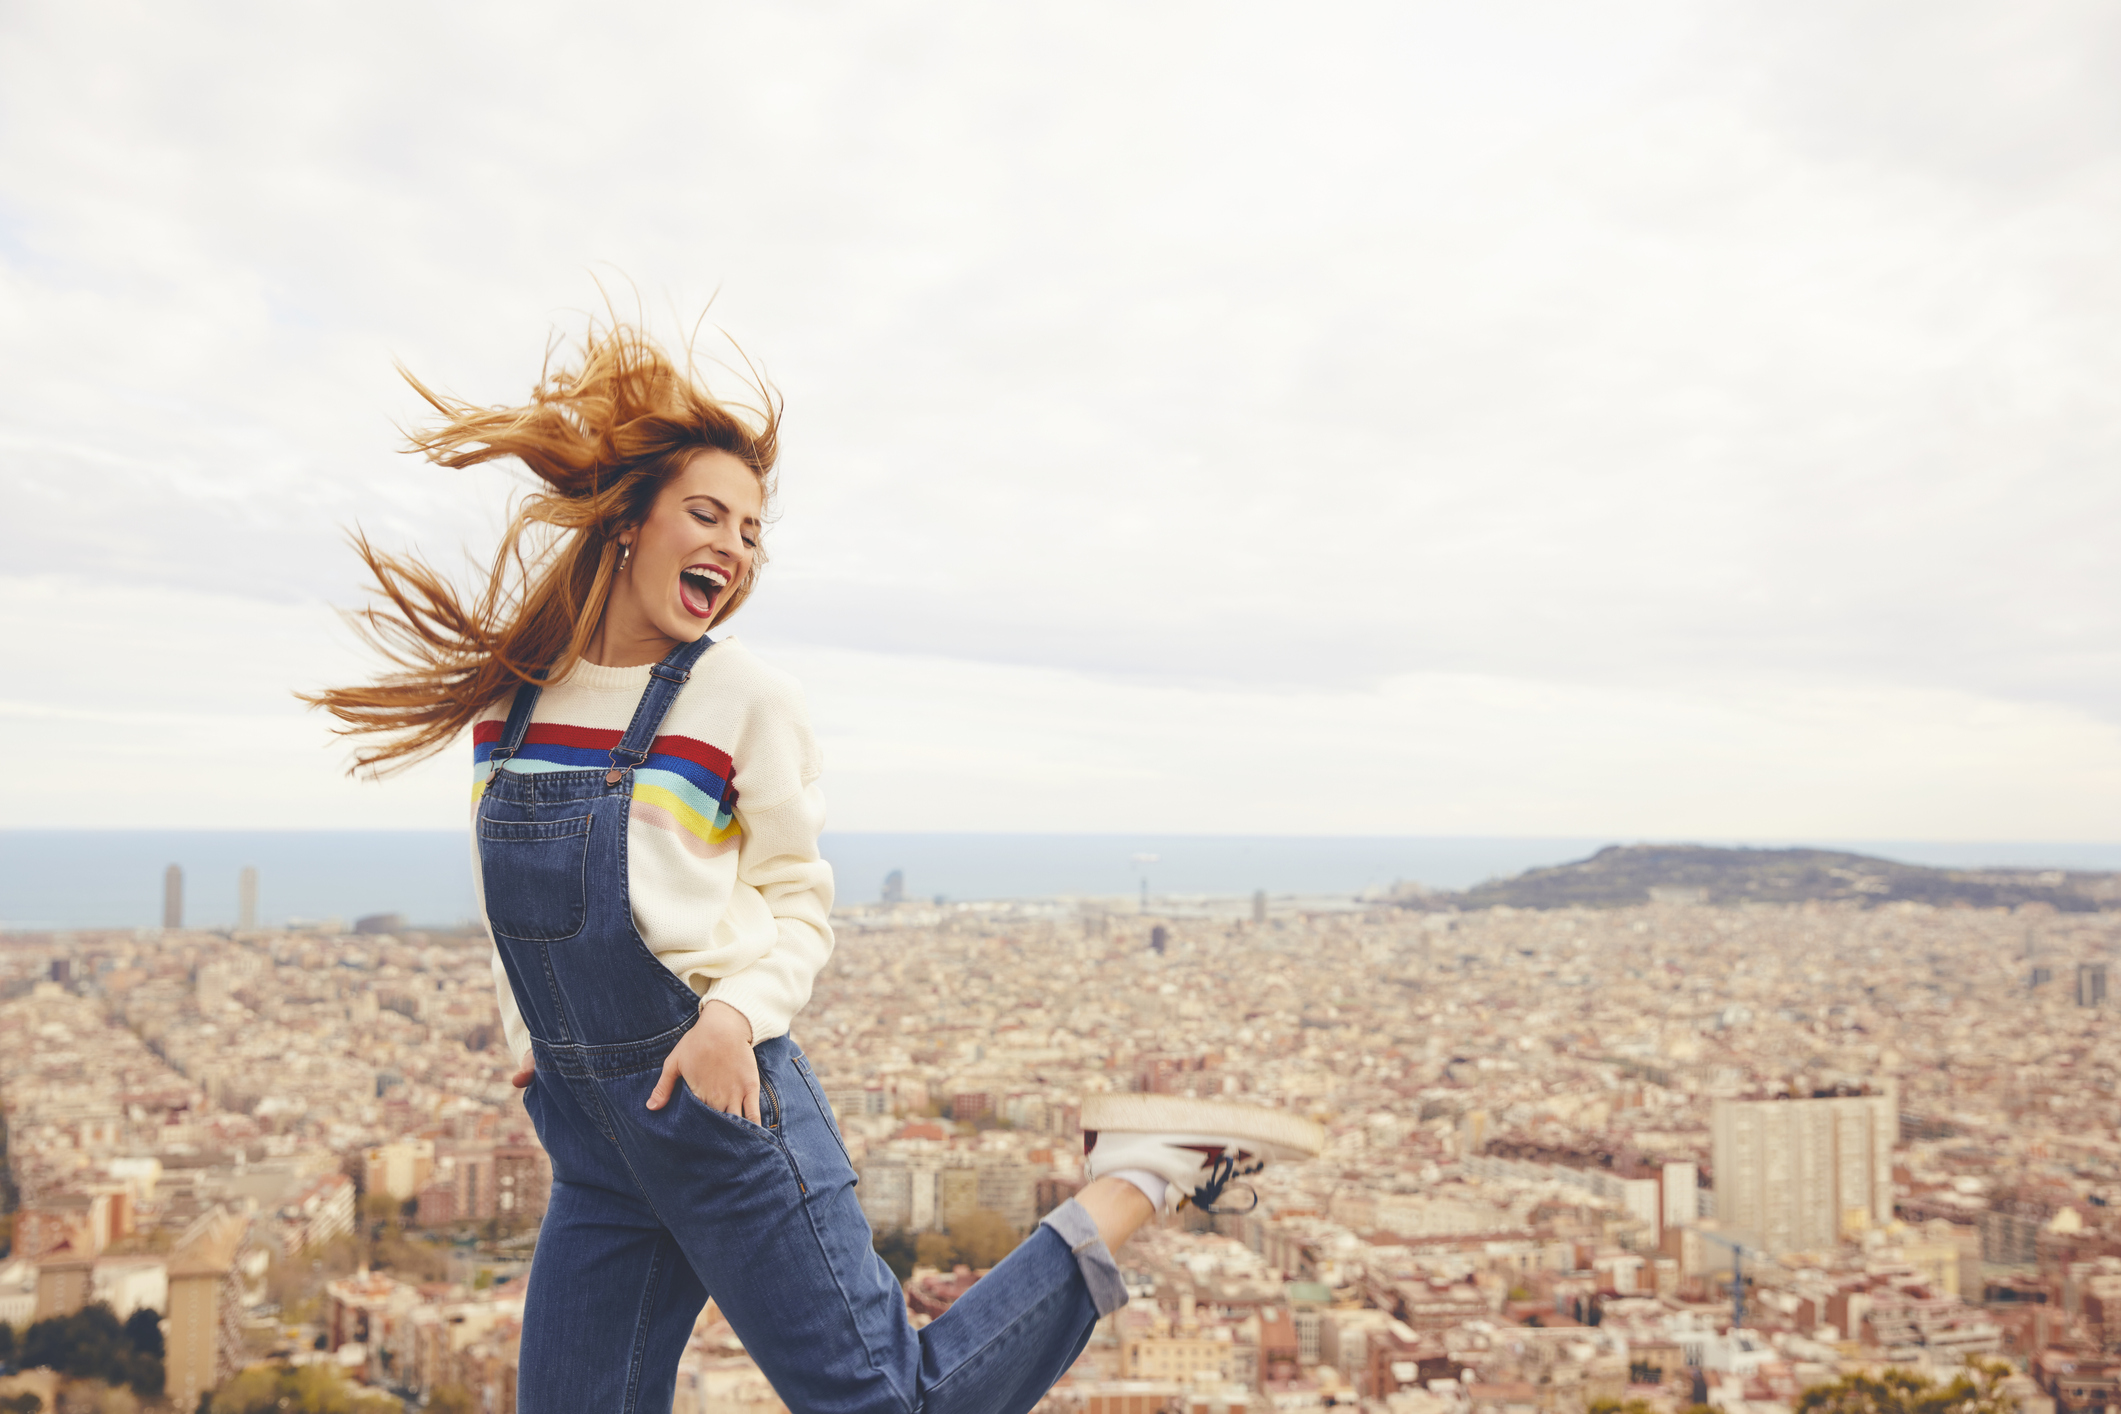 Cheerful woman dancing against cityscape. Happy female is wearing bib overalls. She is enjoying vacations.